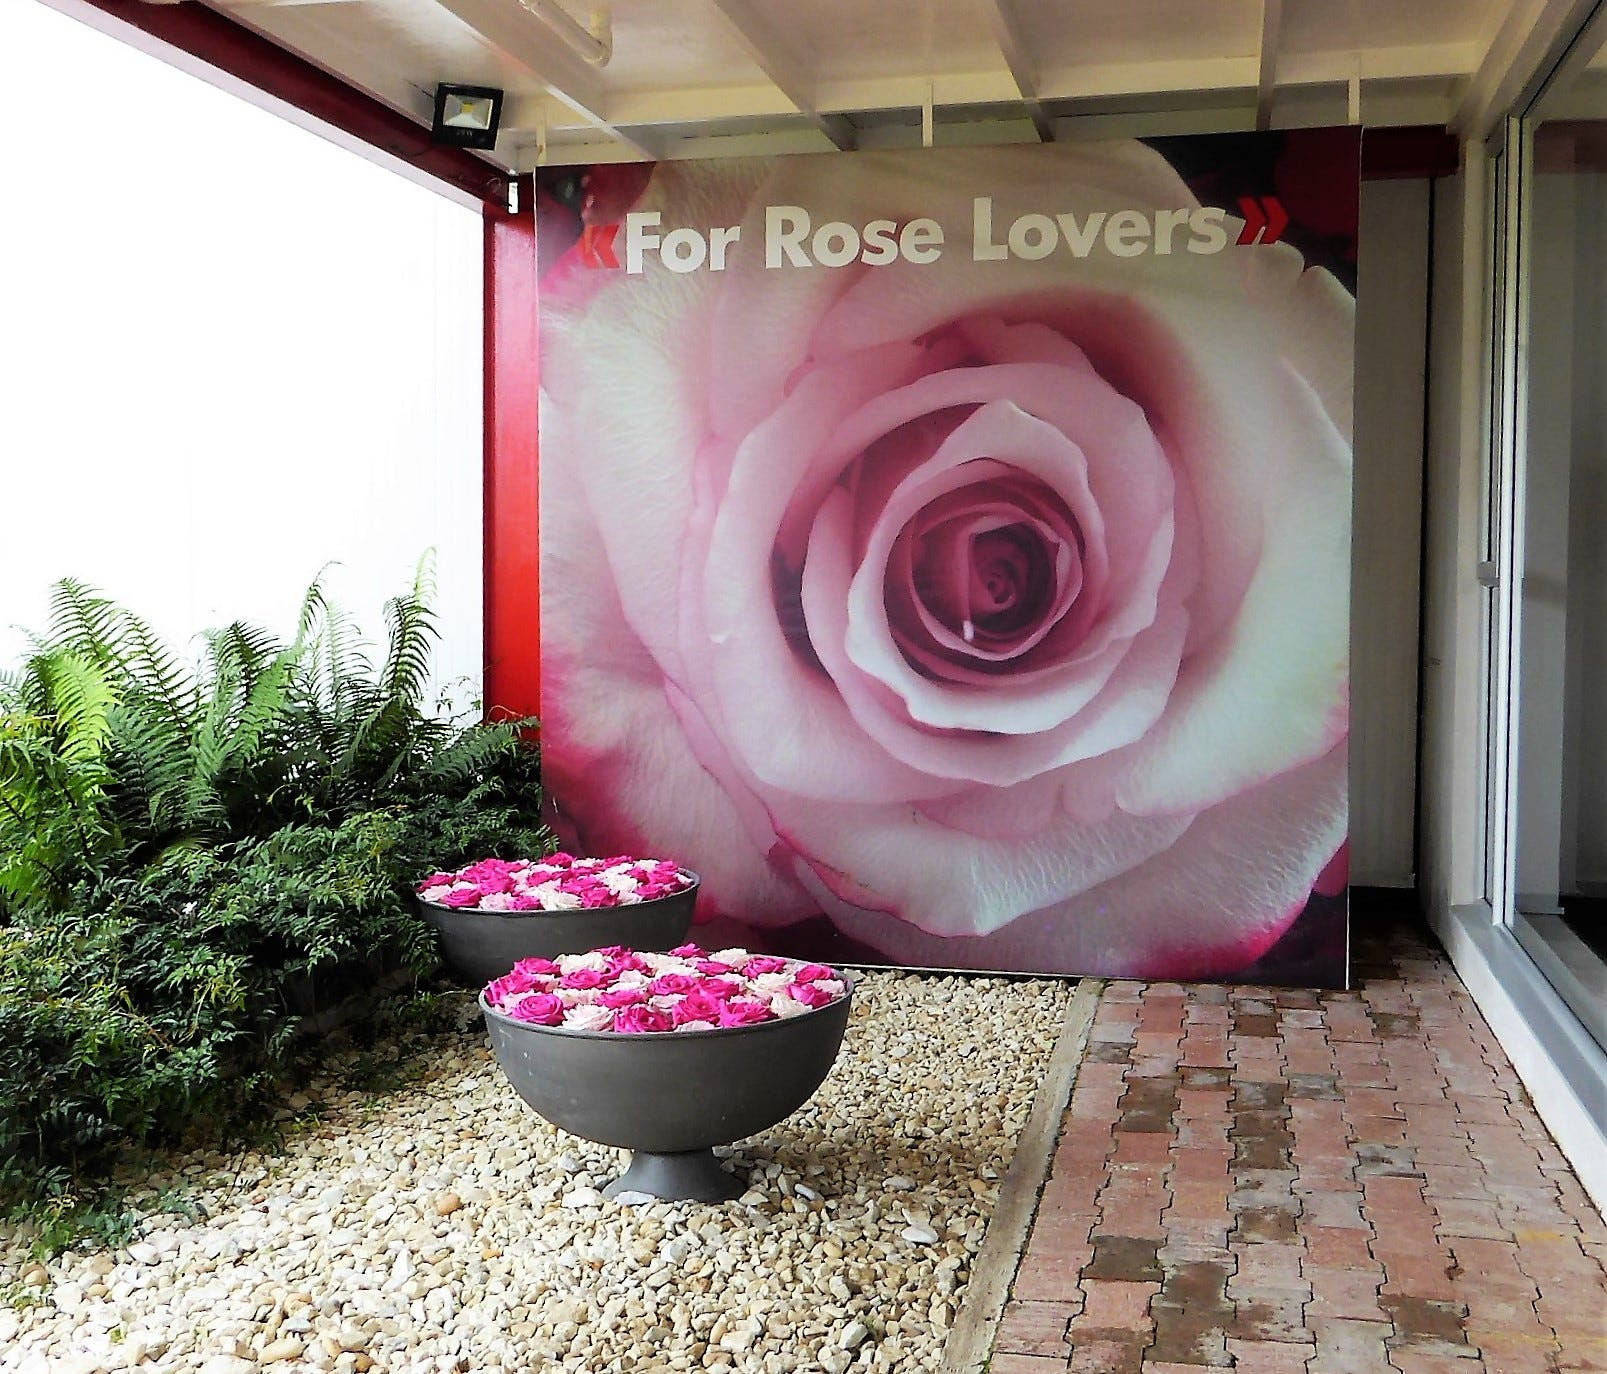 The entryway at Jaroma Roses in Colombia.